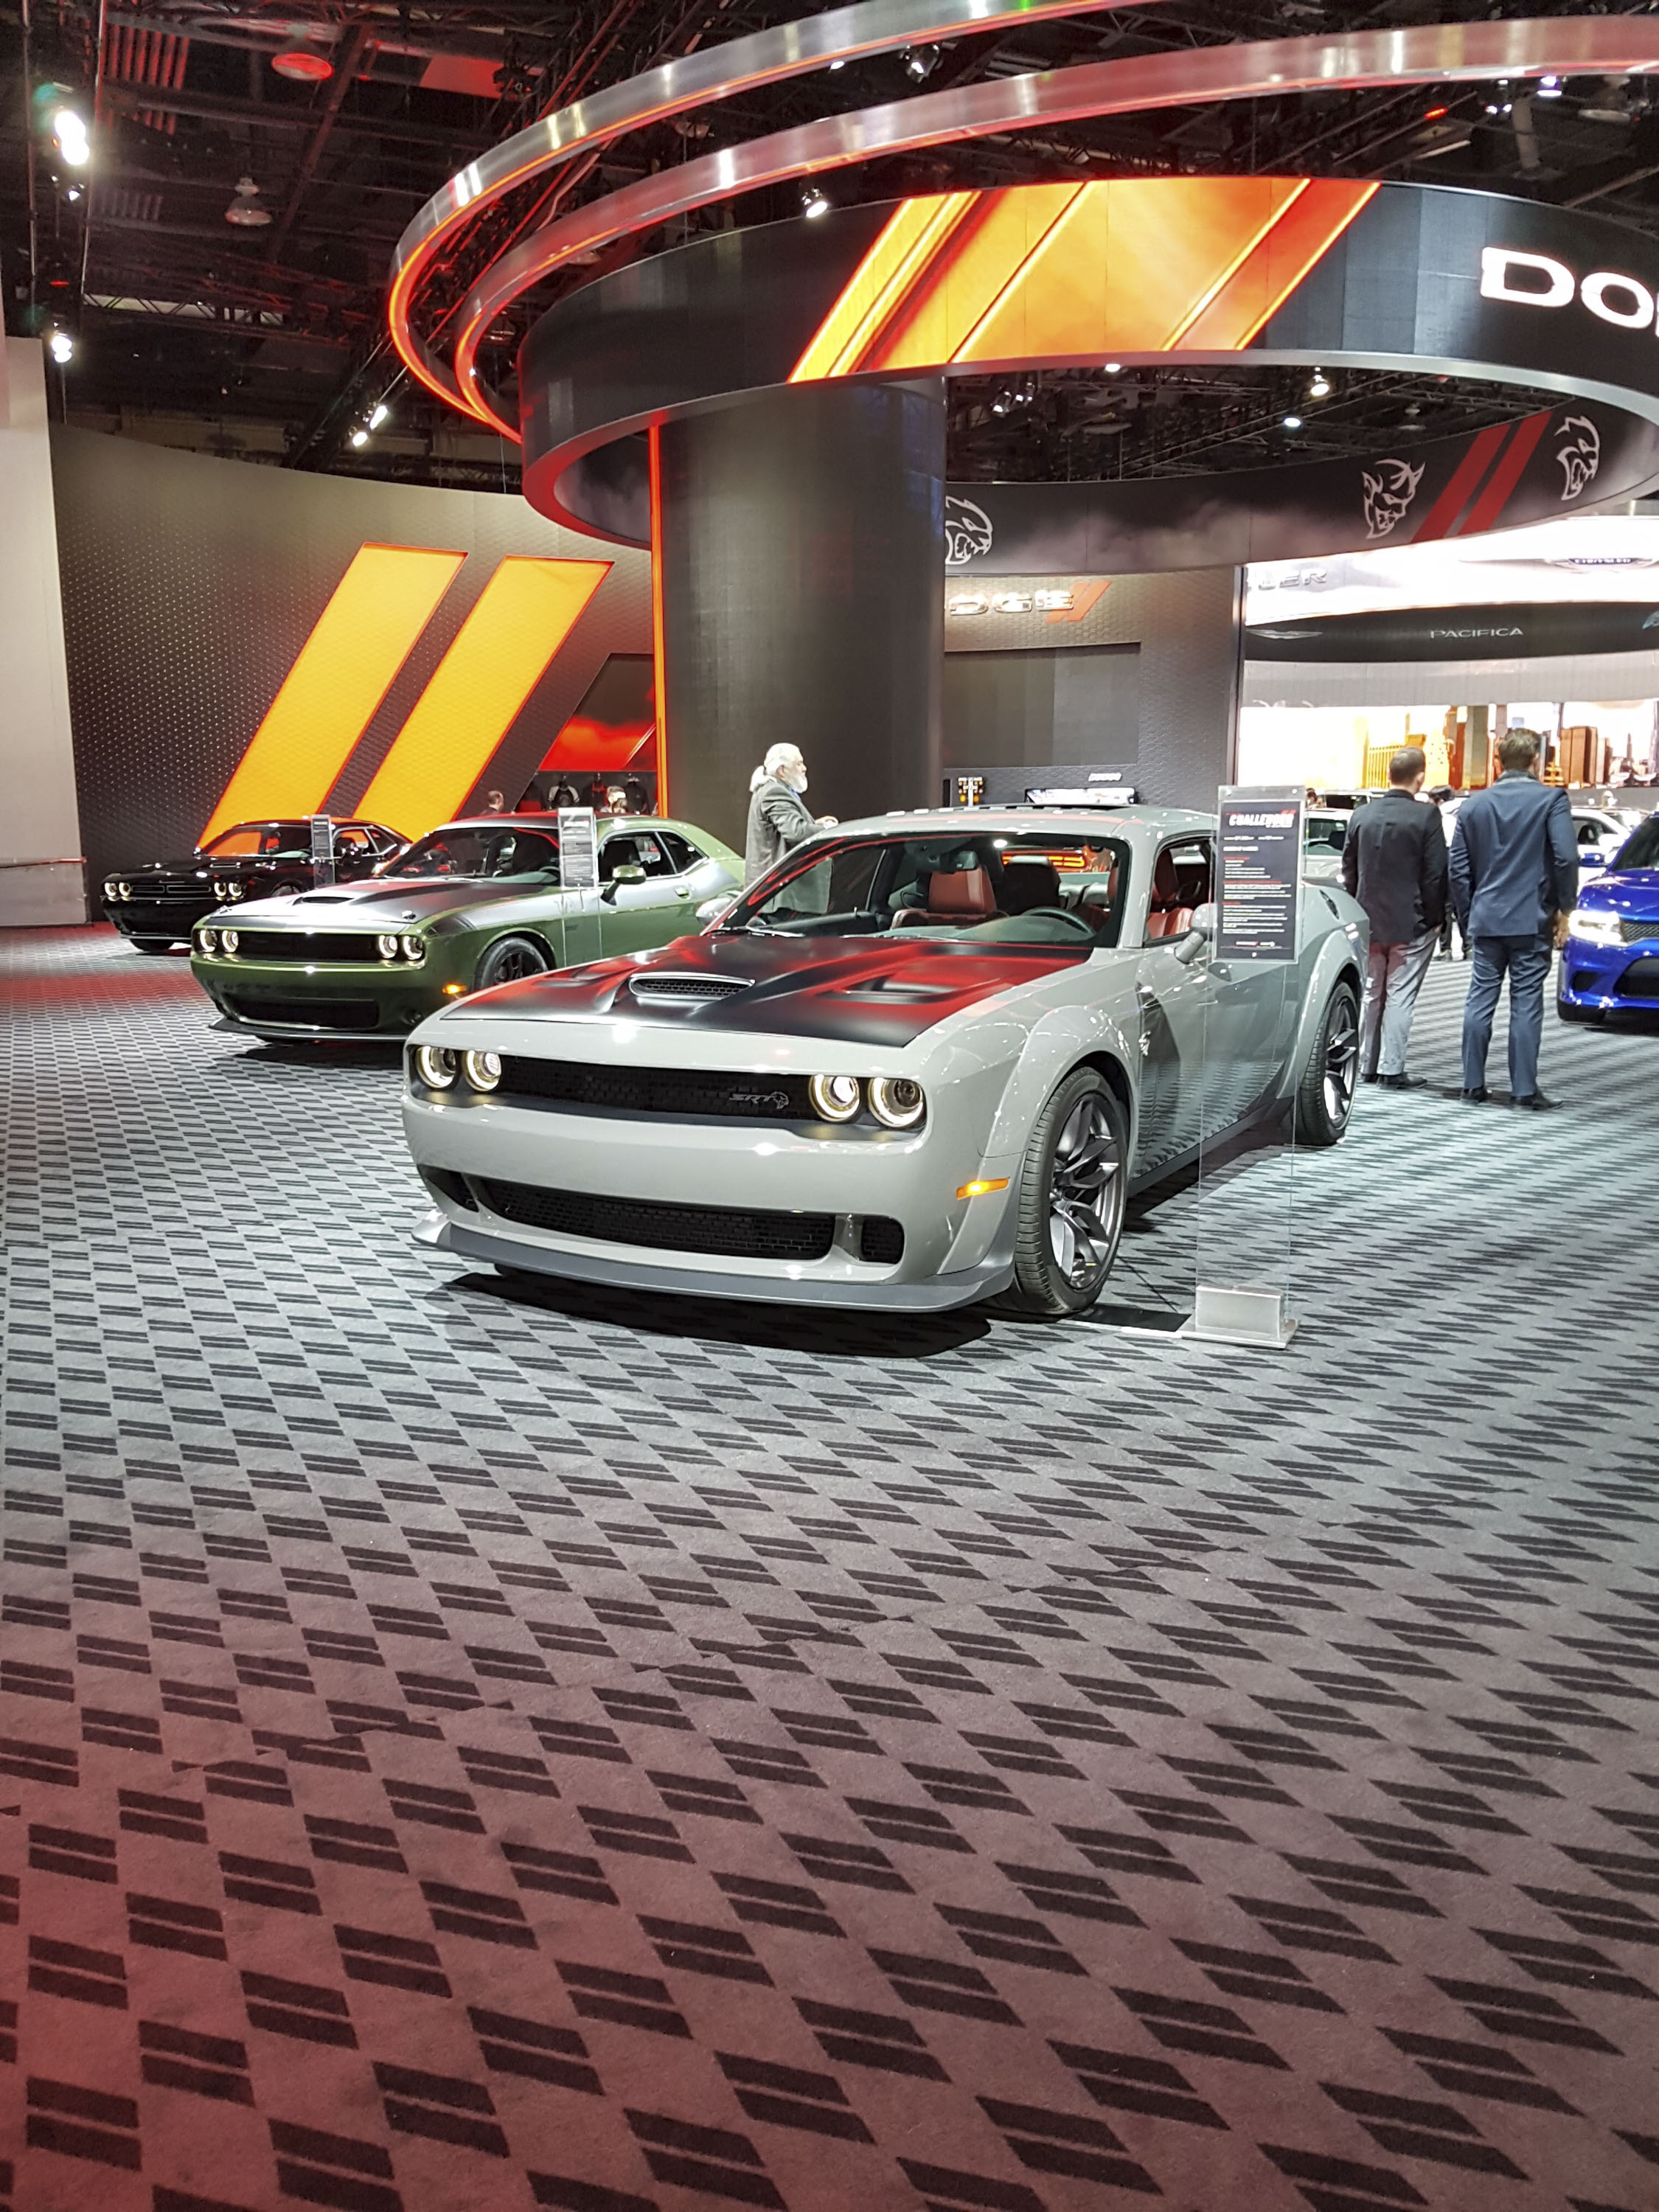 Booth Layout At The Detroit Auto Show Proves FCA Is In Love With The - Car show booth